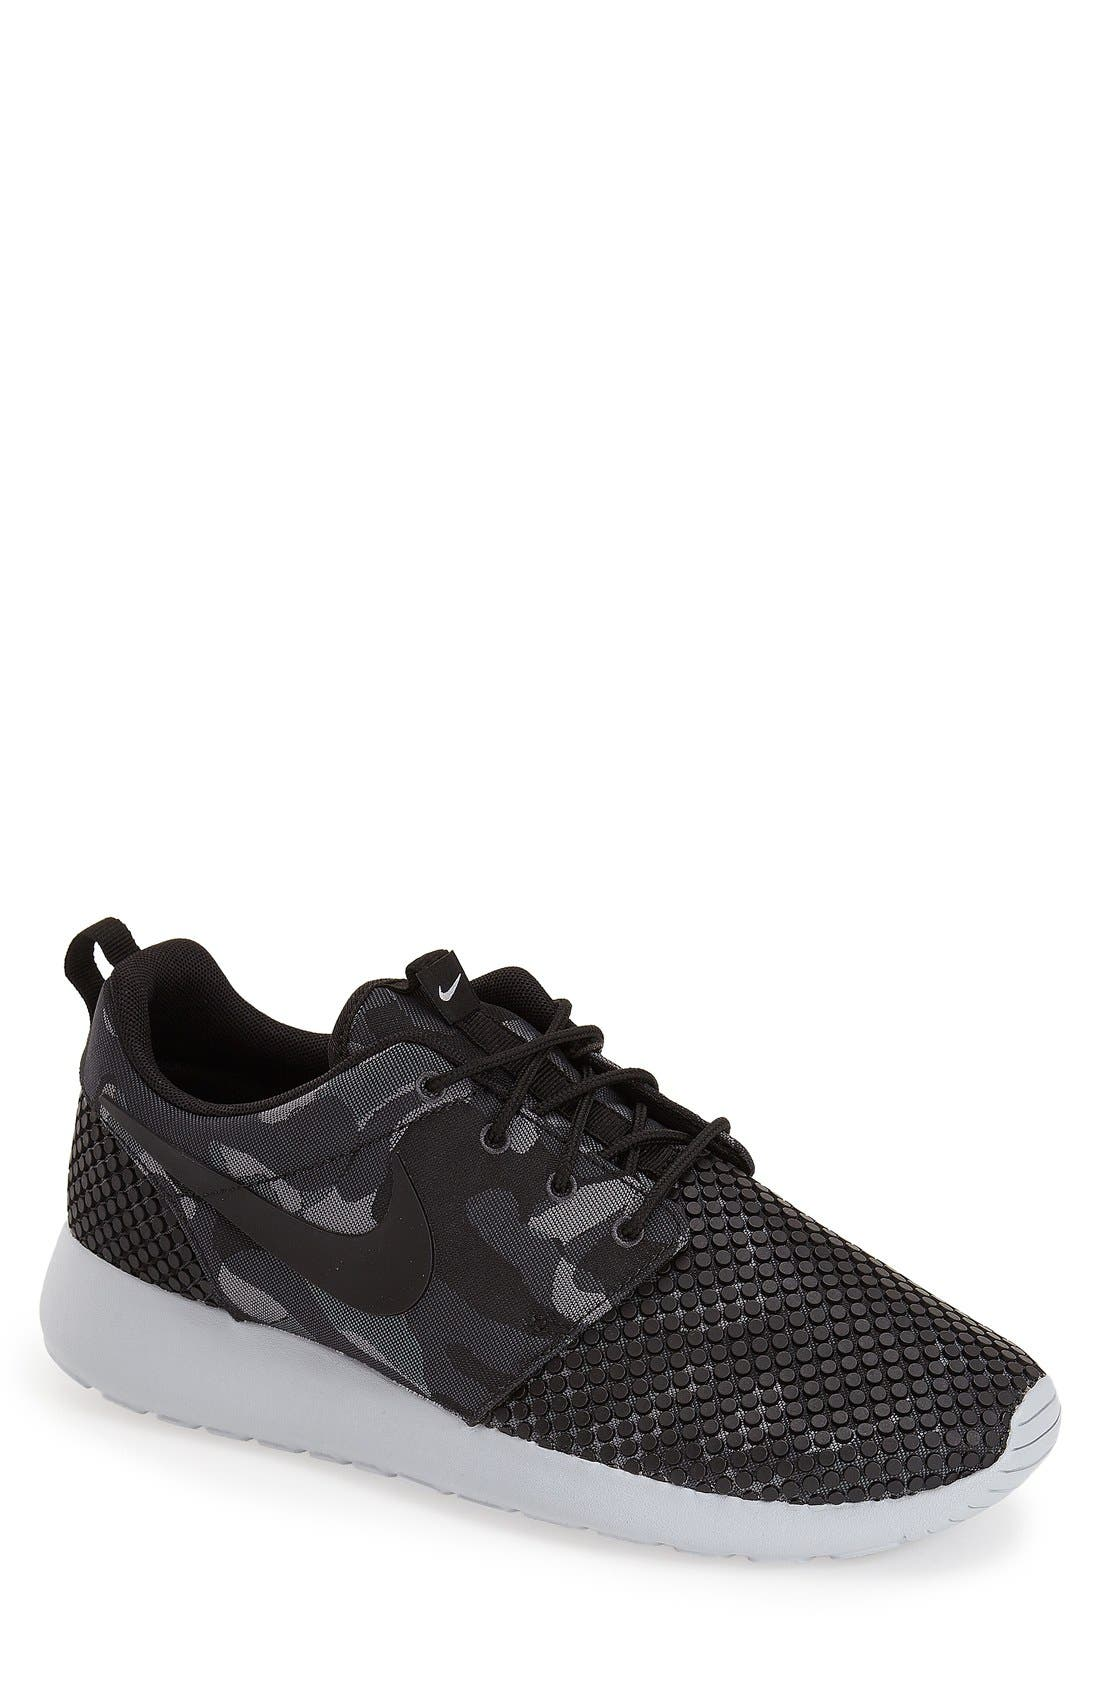 'Roshe One - Premium Plus' Sneaker,                             Main thumbnail 1, color,                             001